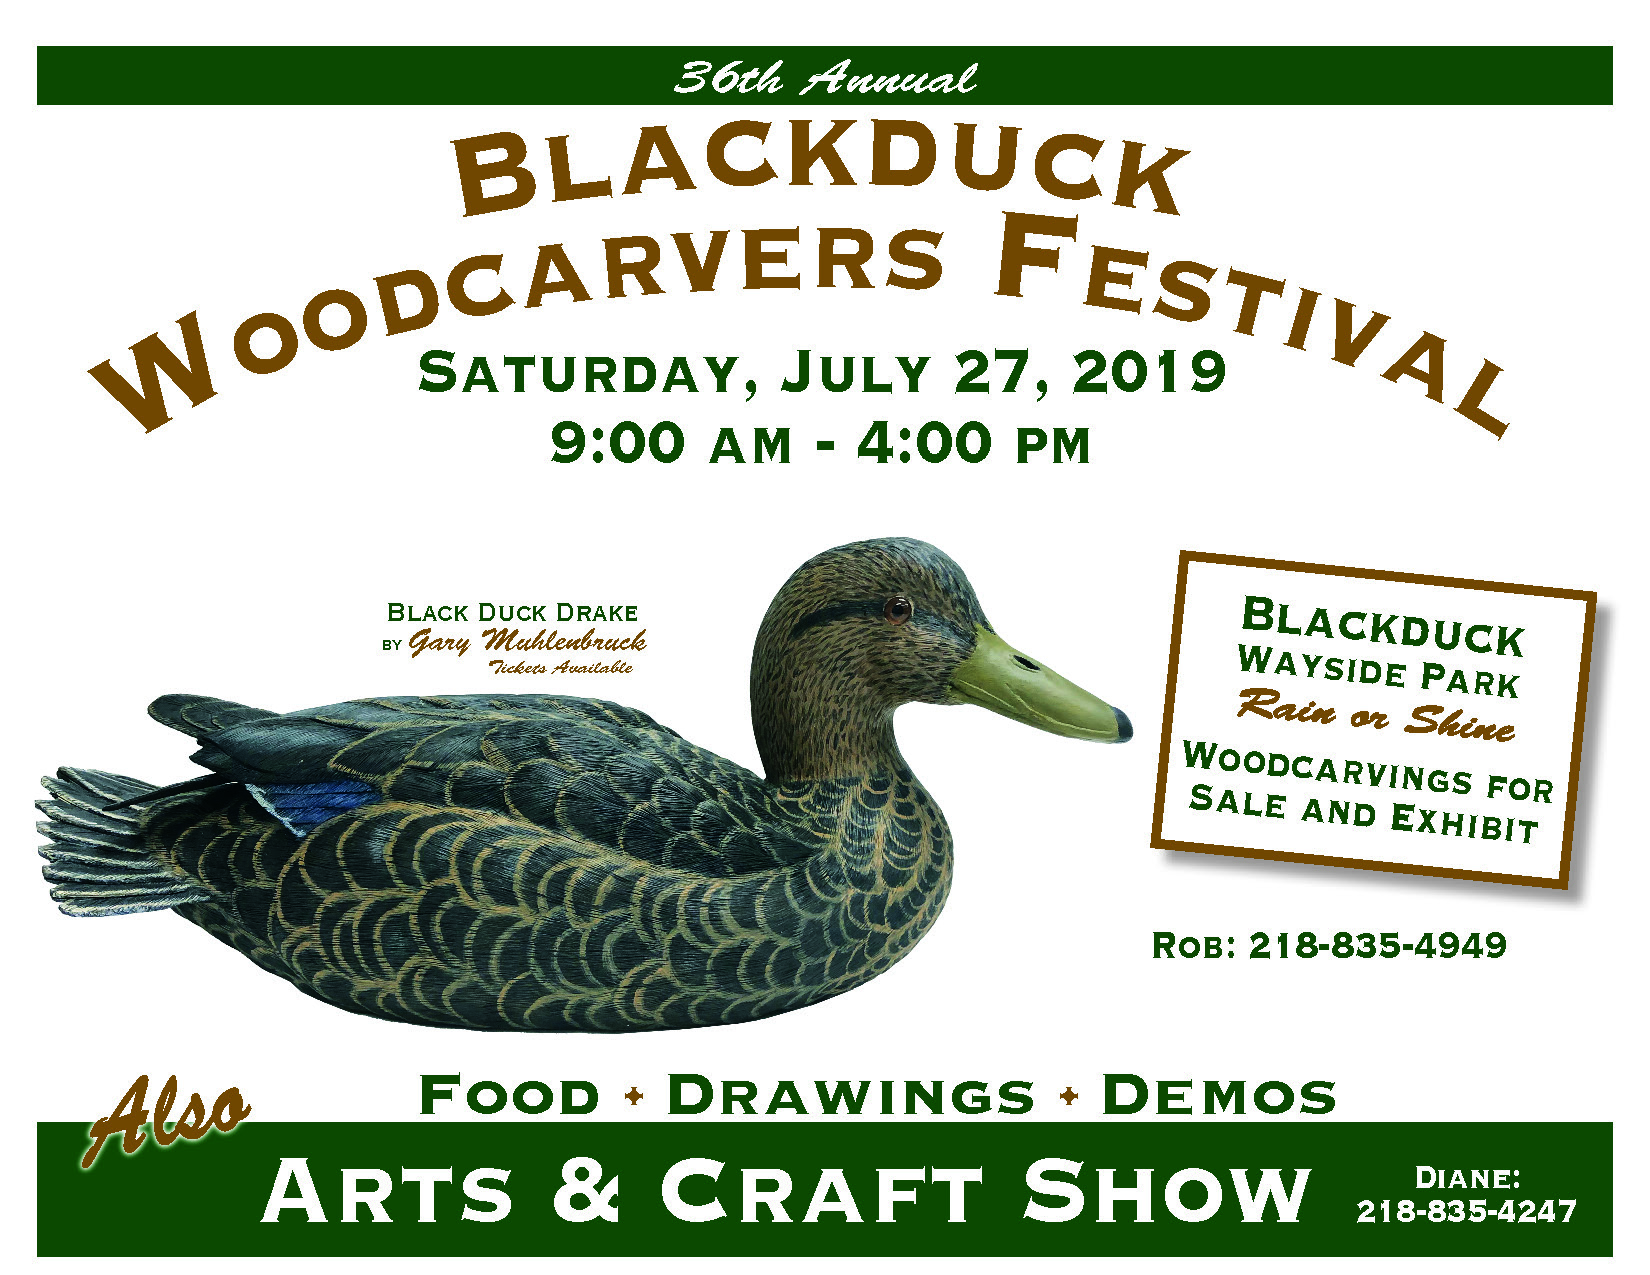 36th Annual Blackduck Woodcarvers Festival